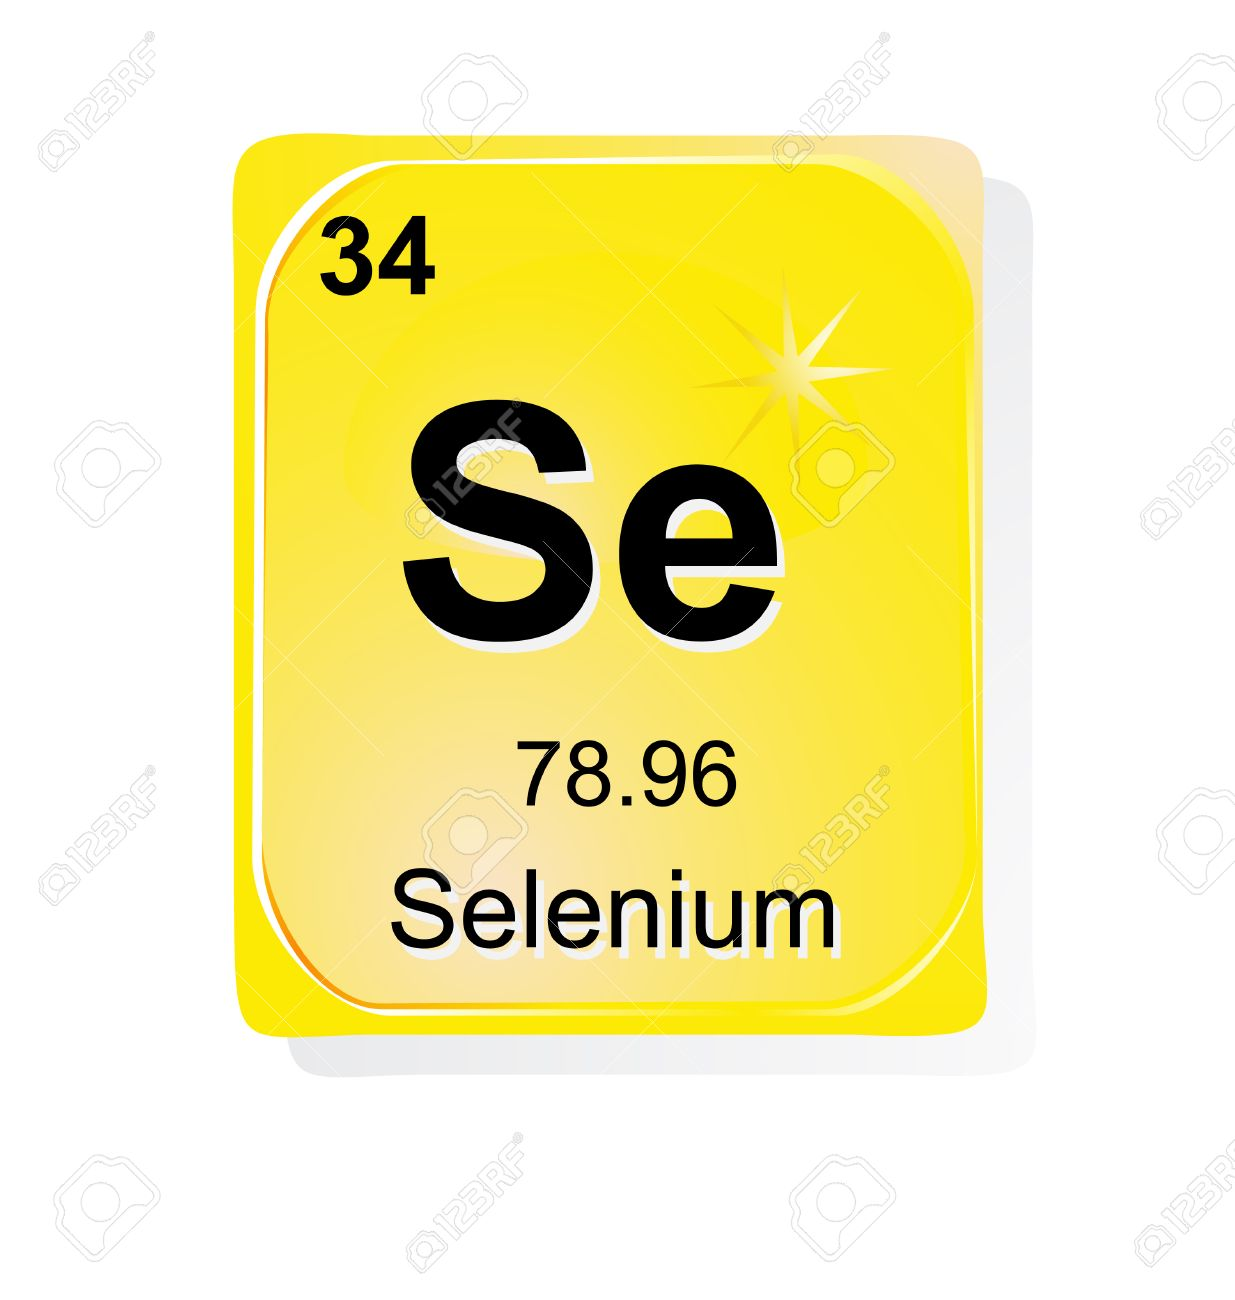 Selenium chemical element with atomic number symbol and weight selenium chemical element with atomic number symbol and weight stock vector 24509760 buycottarizona